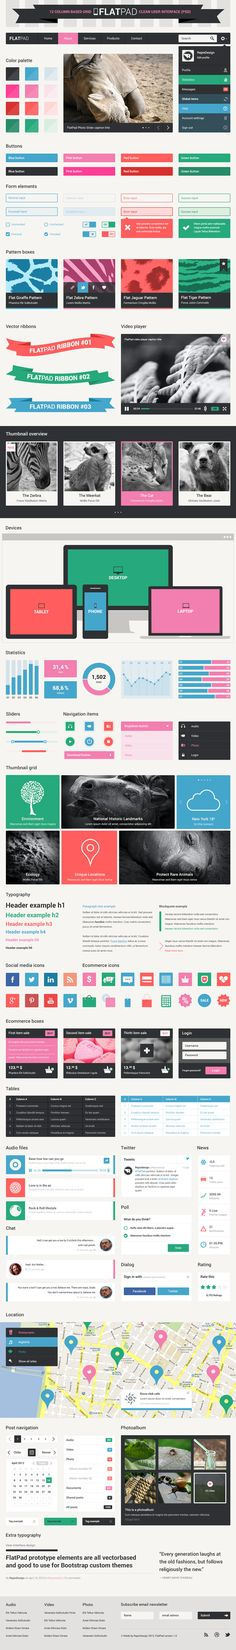 Repix is easily one of my favorite designers. Love his take on Flat UI for Bootstrap